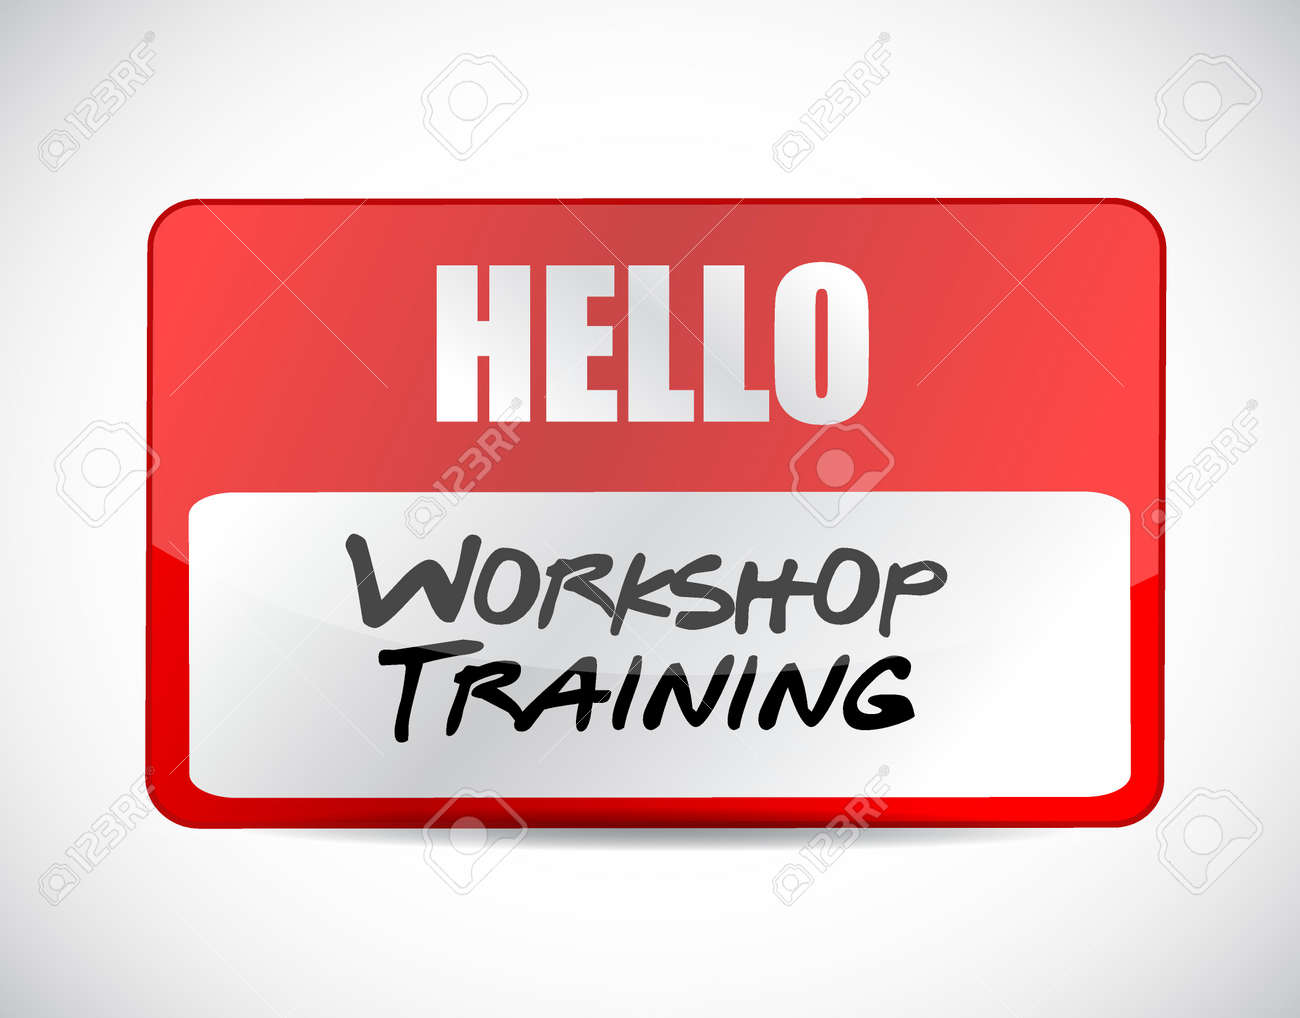 Workshop training name tag sign concept illustration design graphic